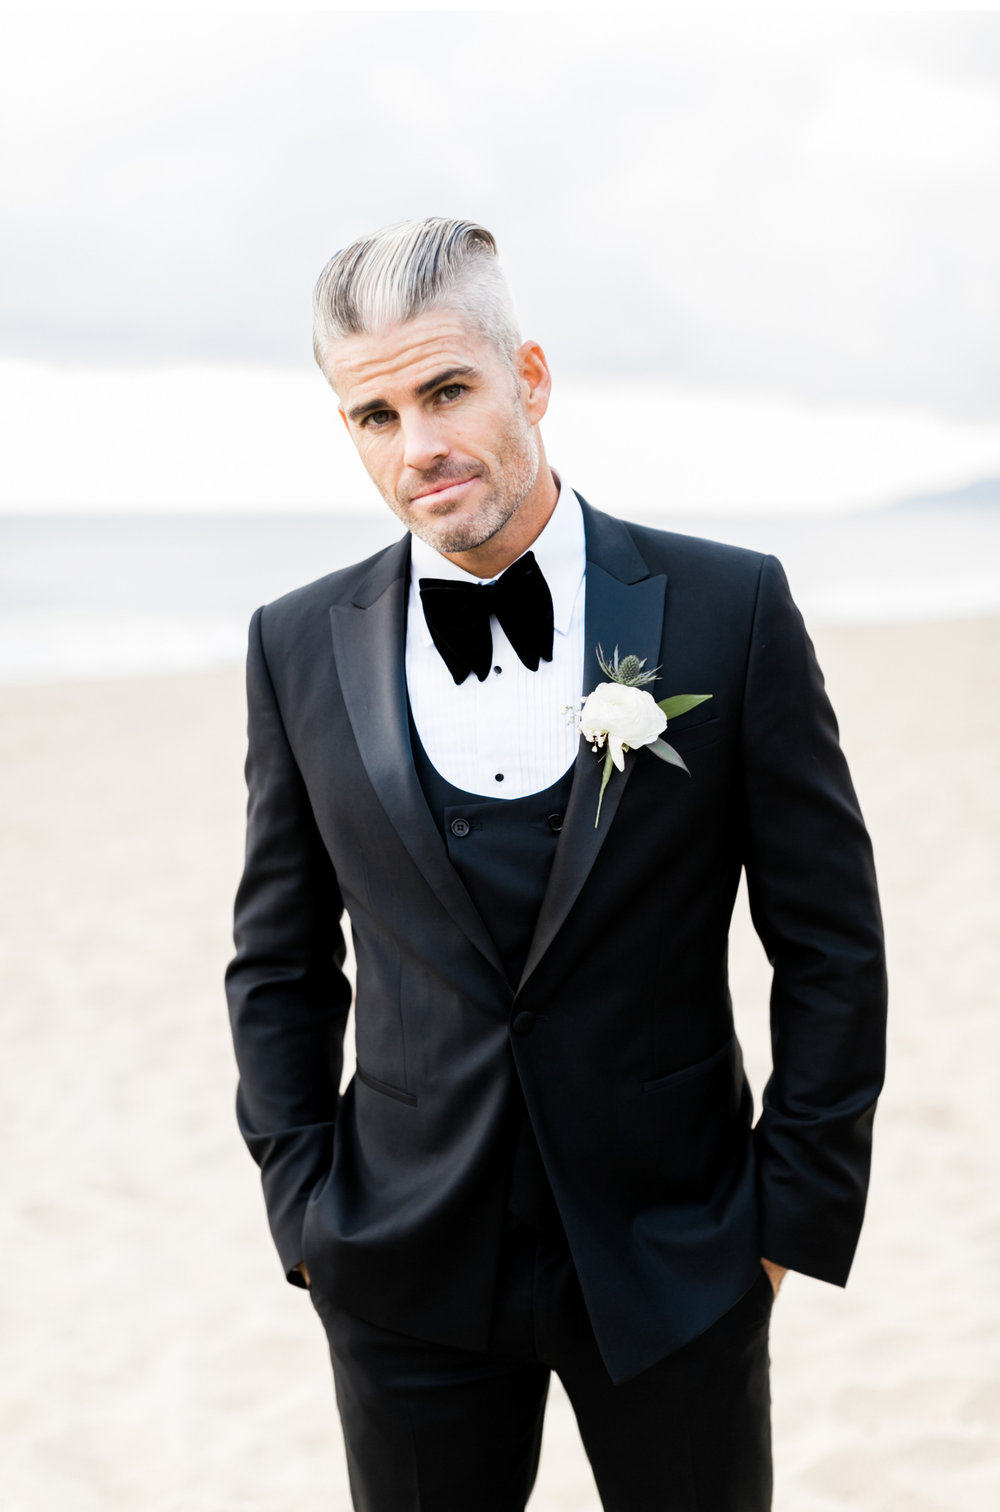 Rod-and-Lorin-Brewster-Style-Me-Pretty-Malibu-Beach-Wedding-Natalie-Schutt-Photography_15.jpg